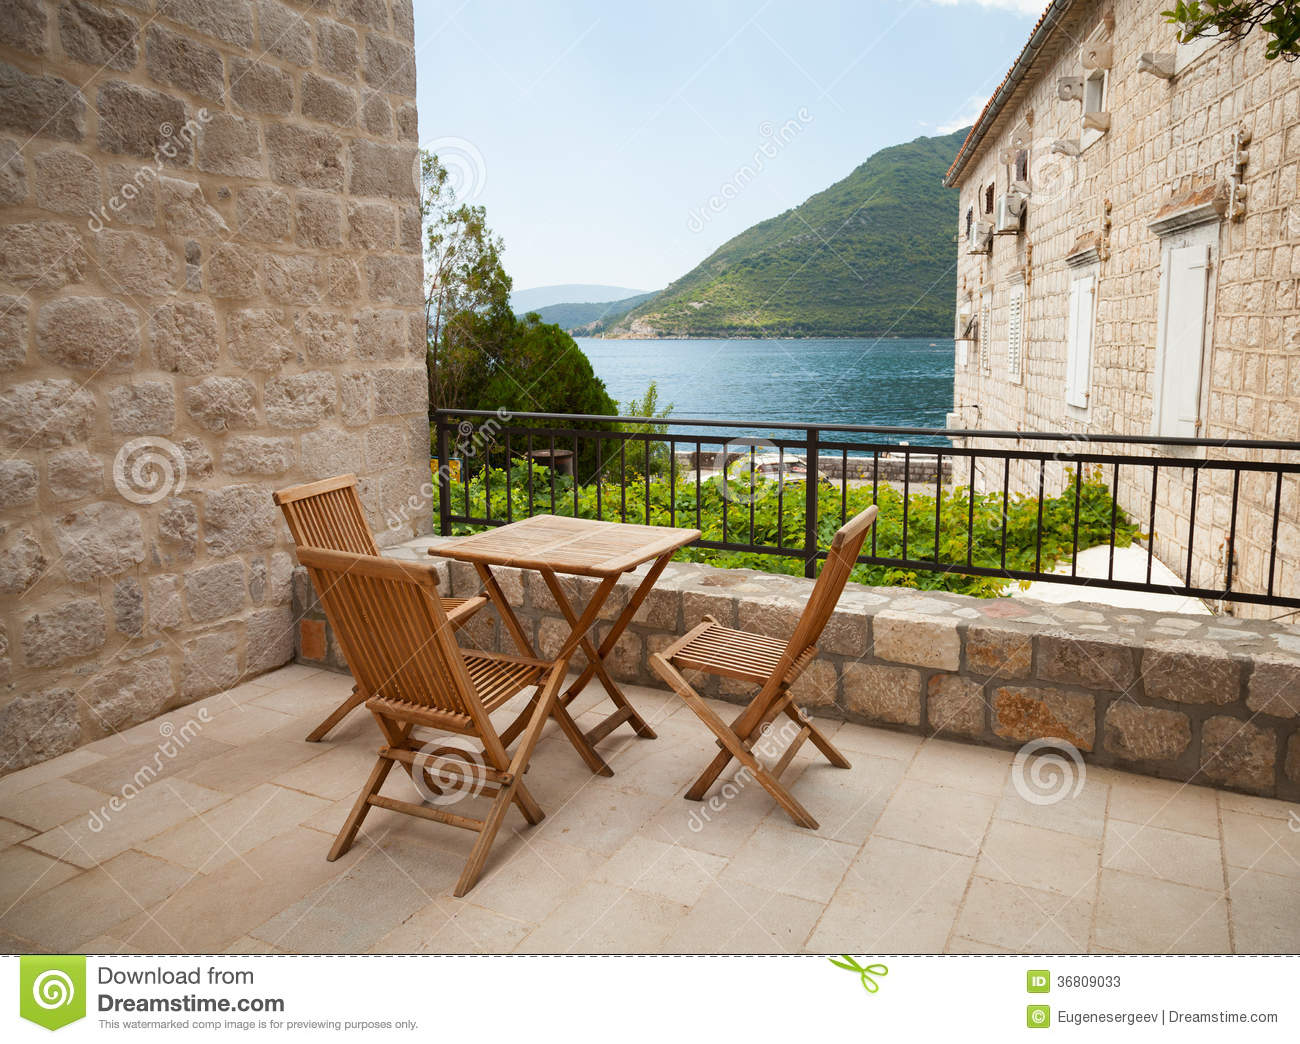 chaises et table en bois sur la terrasse de bord de la mer photos stock image 36809033. Black Bedroom Furniture Sets. Home Design Ideas